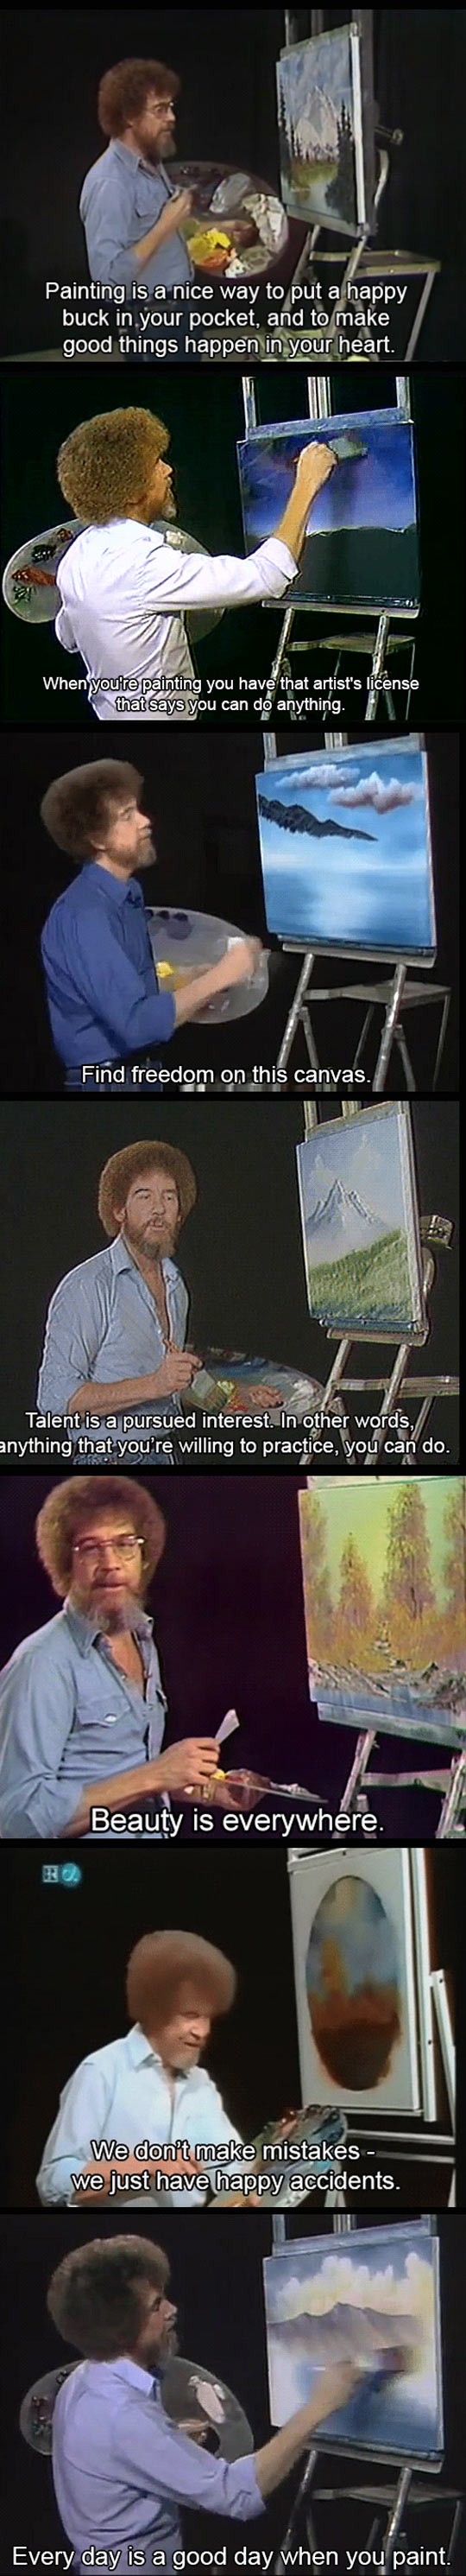 cool-Bob-Ross-quote-painting-TV